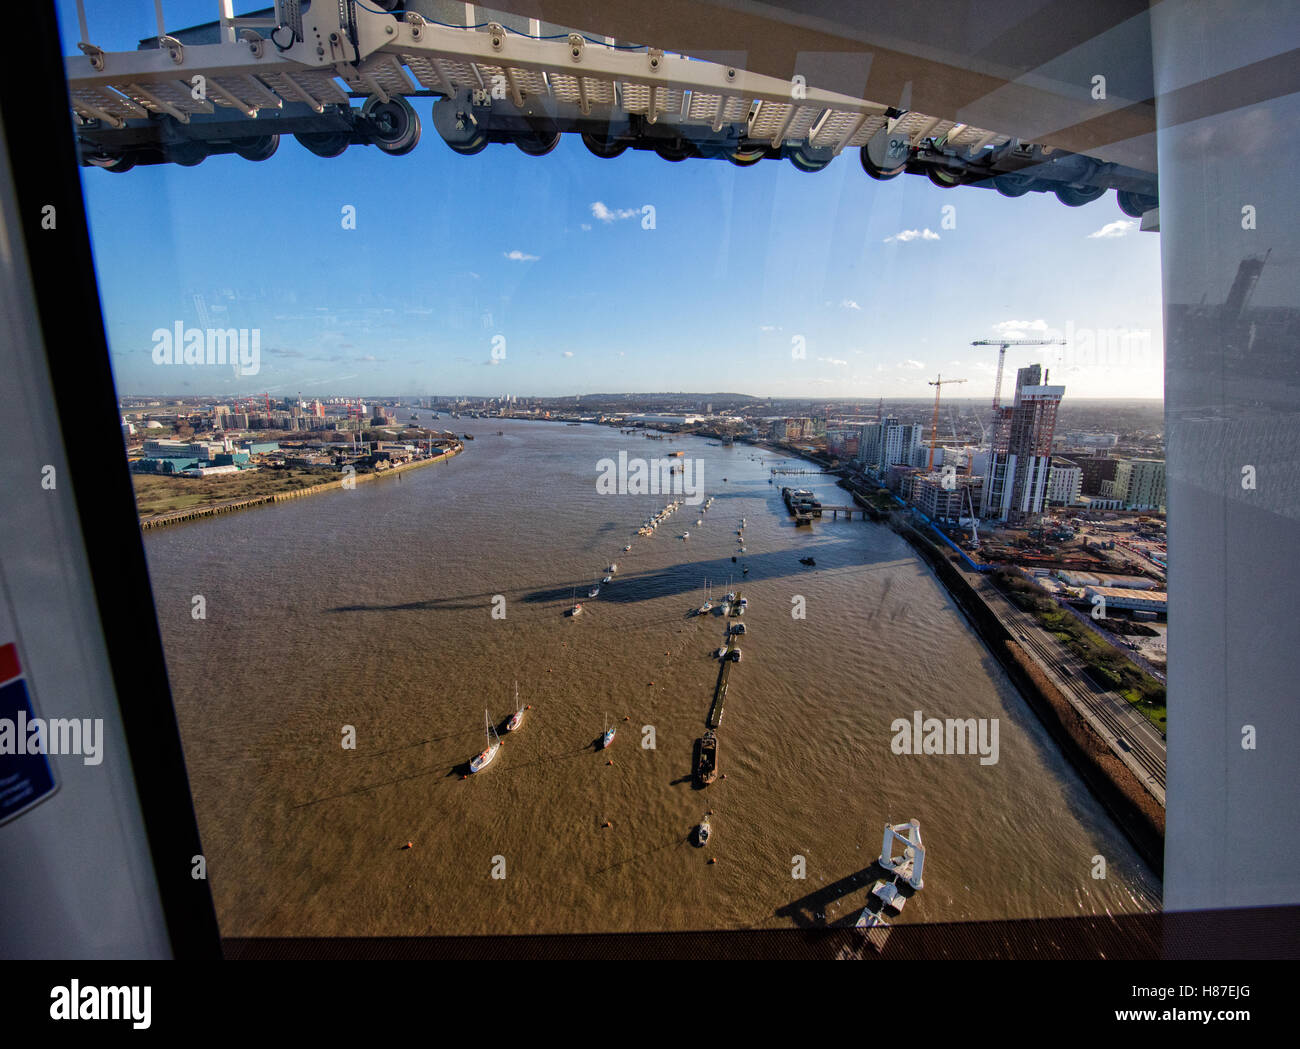 Emirates Air Line gondola cable car across the River Thames from the Greenwich peninsula to the Royal Victoria Dock - Stock Image